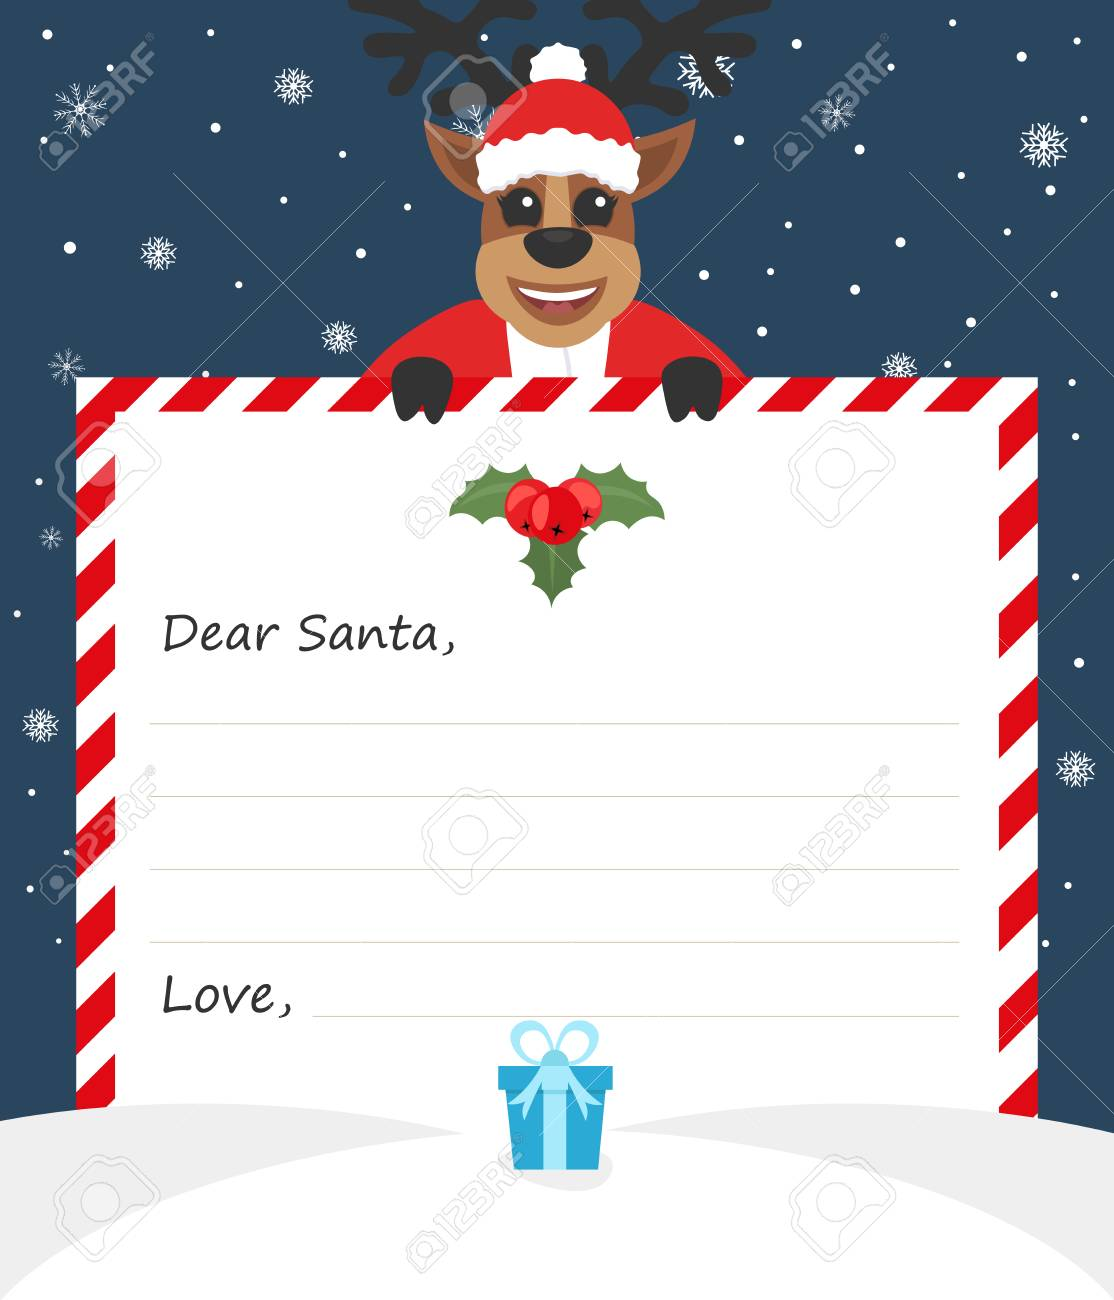 Template Envelope New Year\'s Letter To Cute Santa Claus With ...